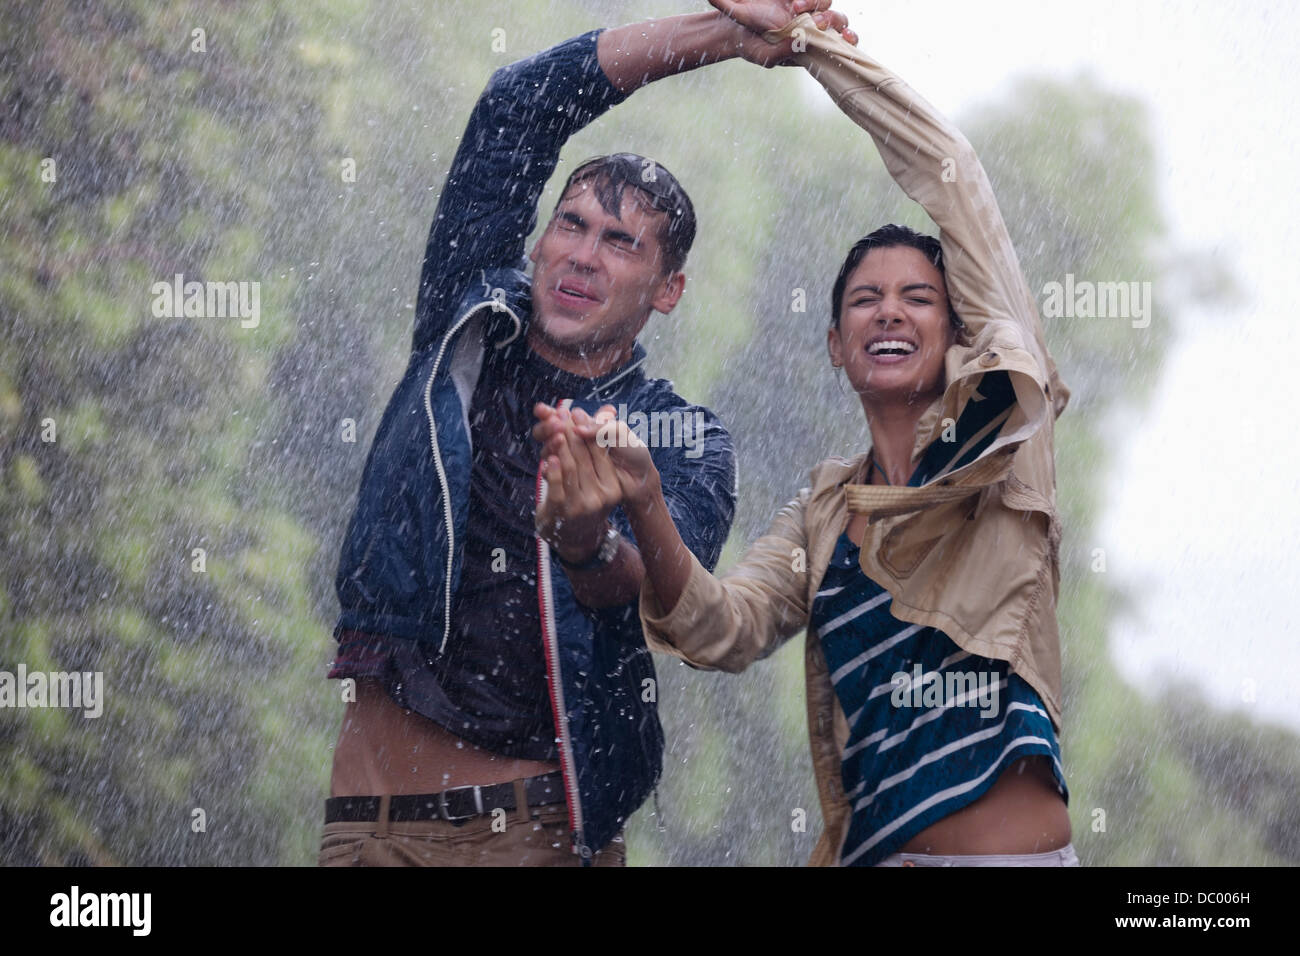 Heureux couple dancing in rain Photo Stock